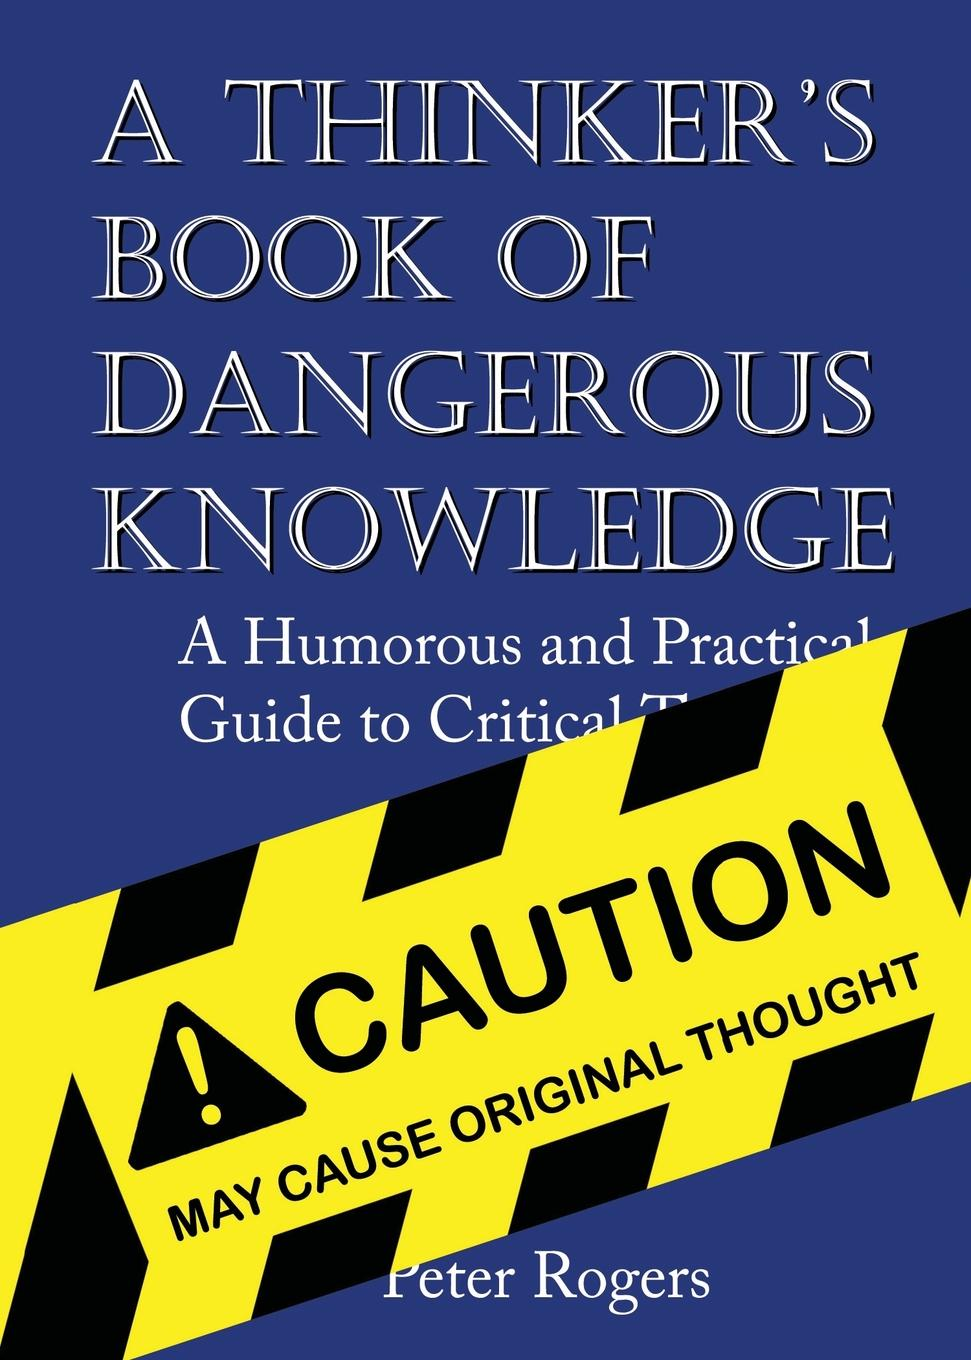 Peter Rogers A Thinker.s Book of Dangerous Knowledge. A Humorous and Practical Guide to Critical Thinking david hunter a a practical guide to critical thinking deciding what to do and believe